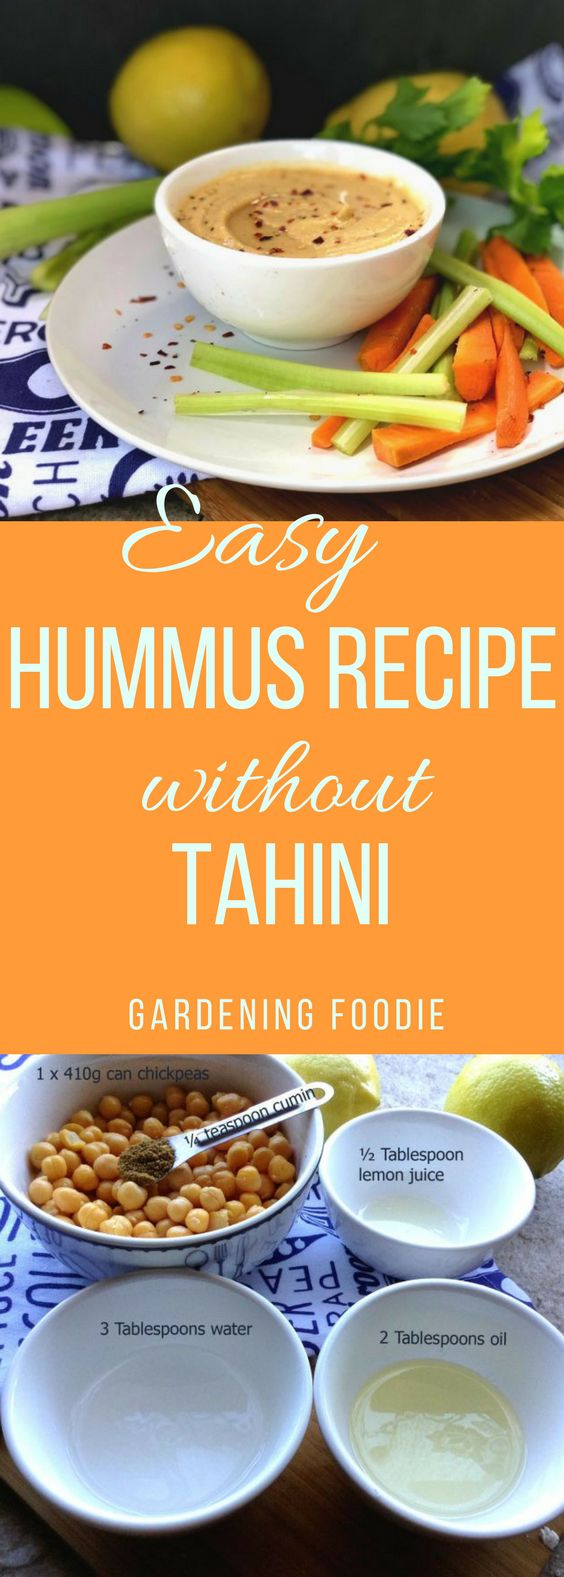 This Easy Hummus recipe without tahini  takes just 10 minutes to prepare. Simple, healthy and high in protein, hummus is an amazing spread for breads and crackers and makes a delicious dip for chips.